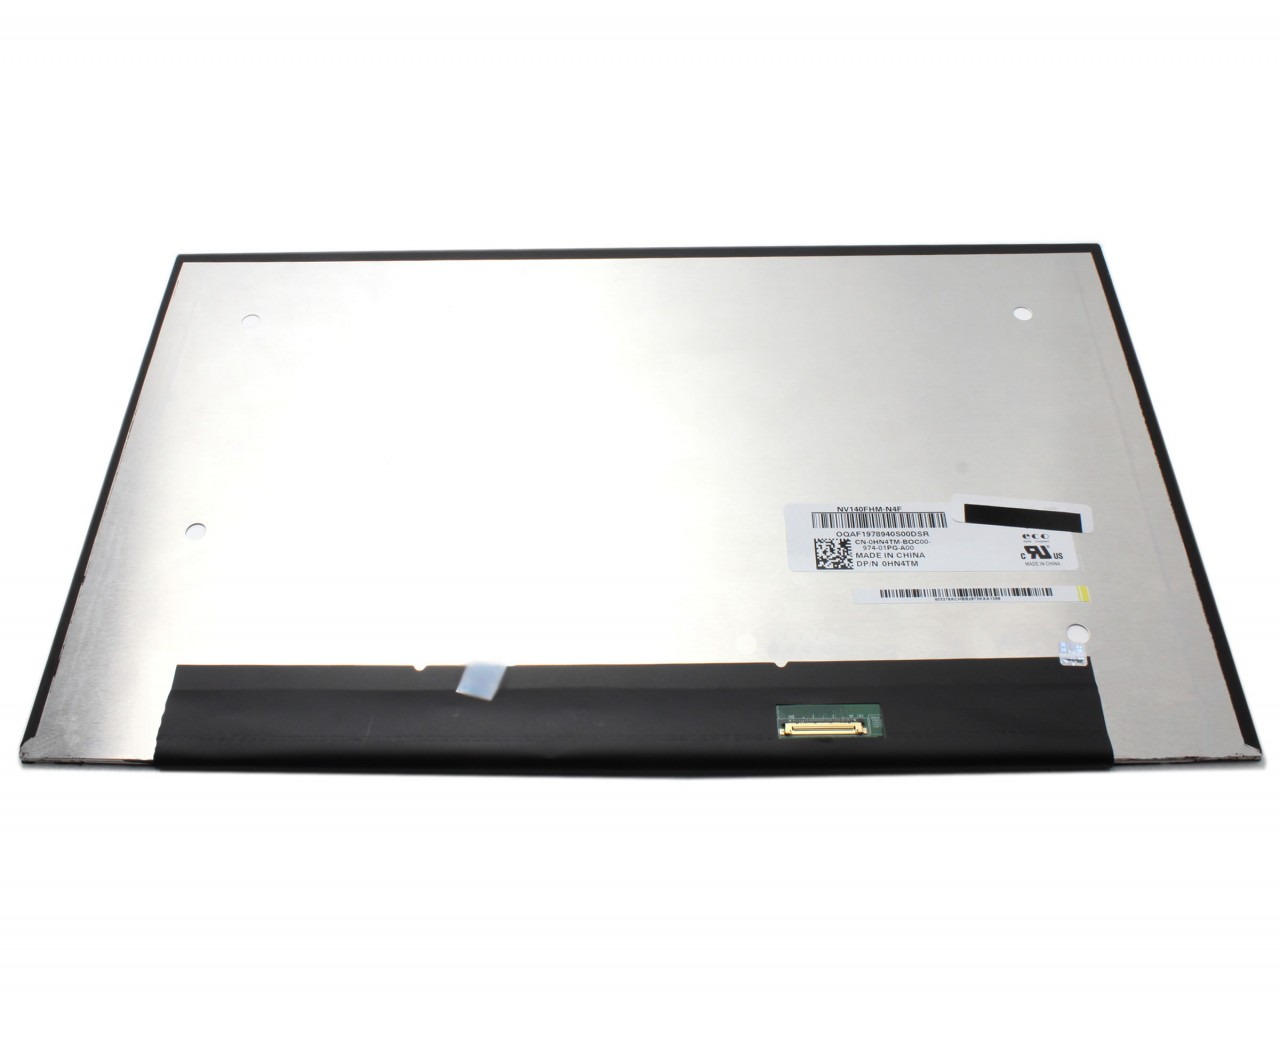 Display laptop Dell Latitude E5400 Ecran 14.0 1920x1080 30 pinni eDP imagine powerlaptop.ro 2021